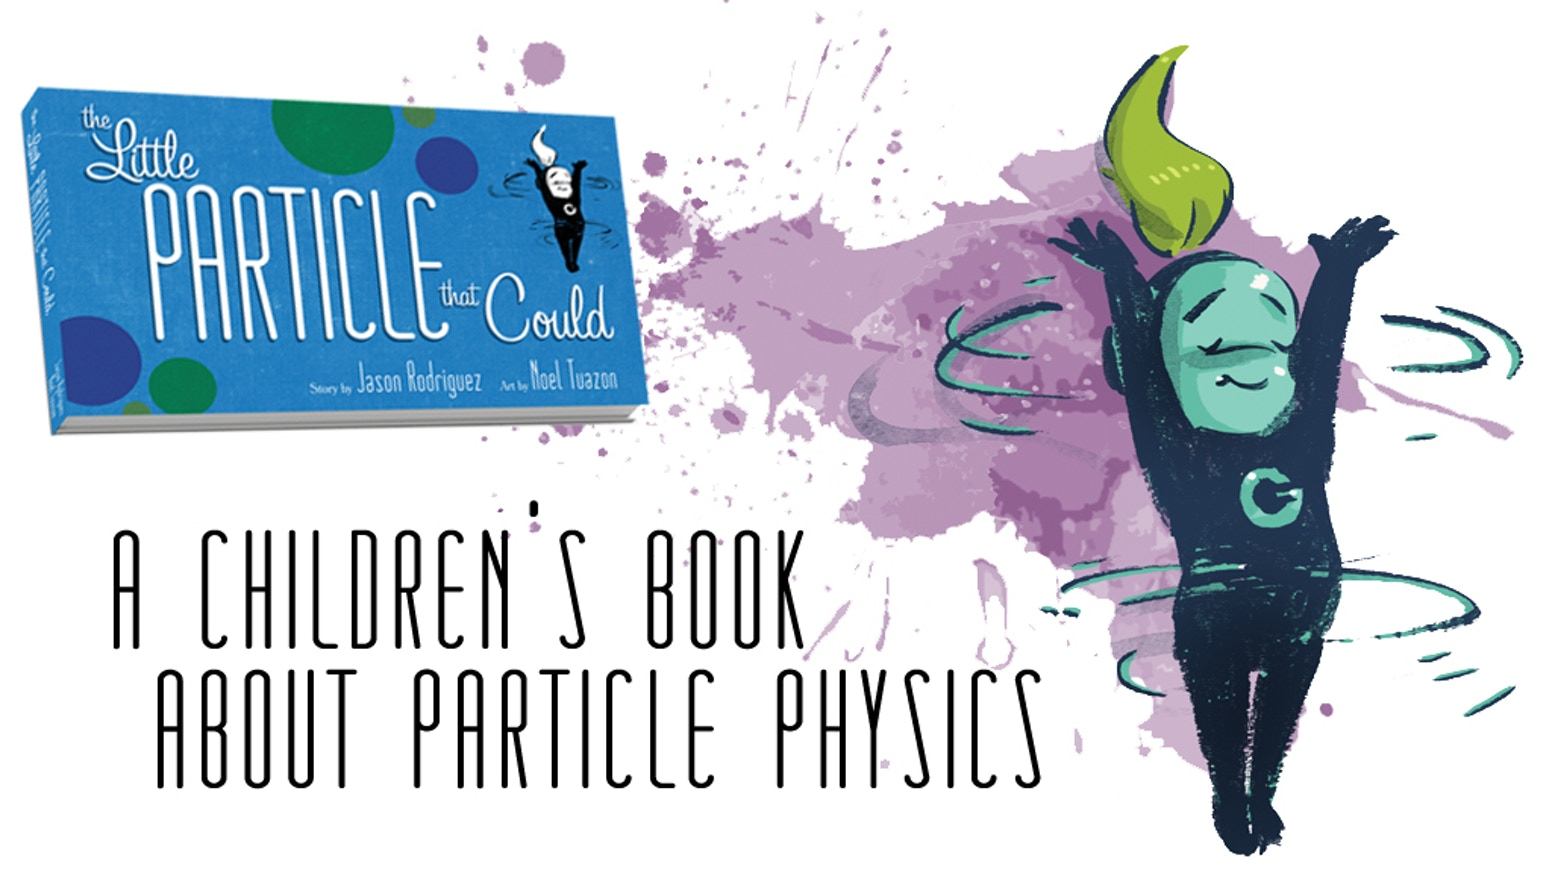 A children's book about particle physics; The story of a graviton who wants to meet a photon, but she just can't seem to catch him. The book will be available in September 2017 from Tiny Quasars.